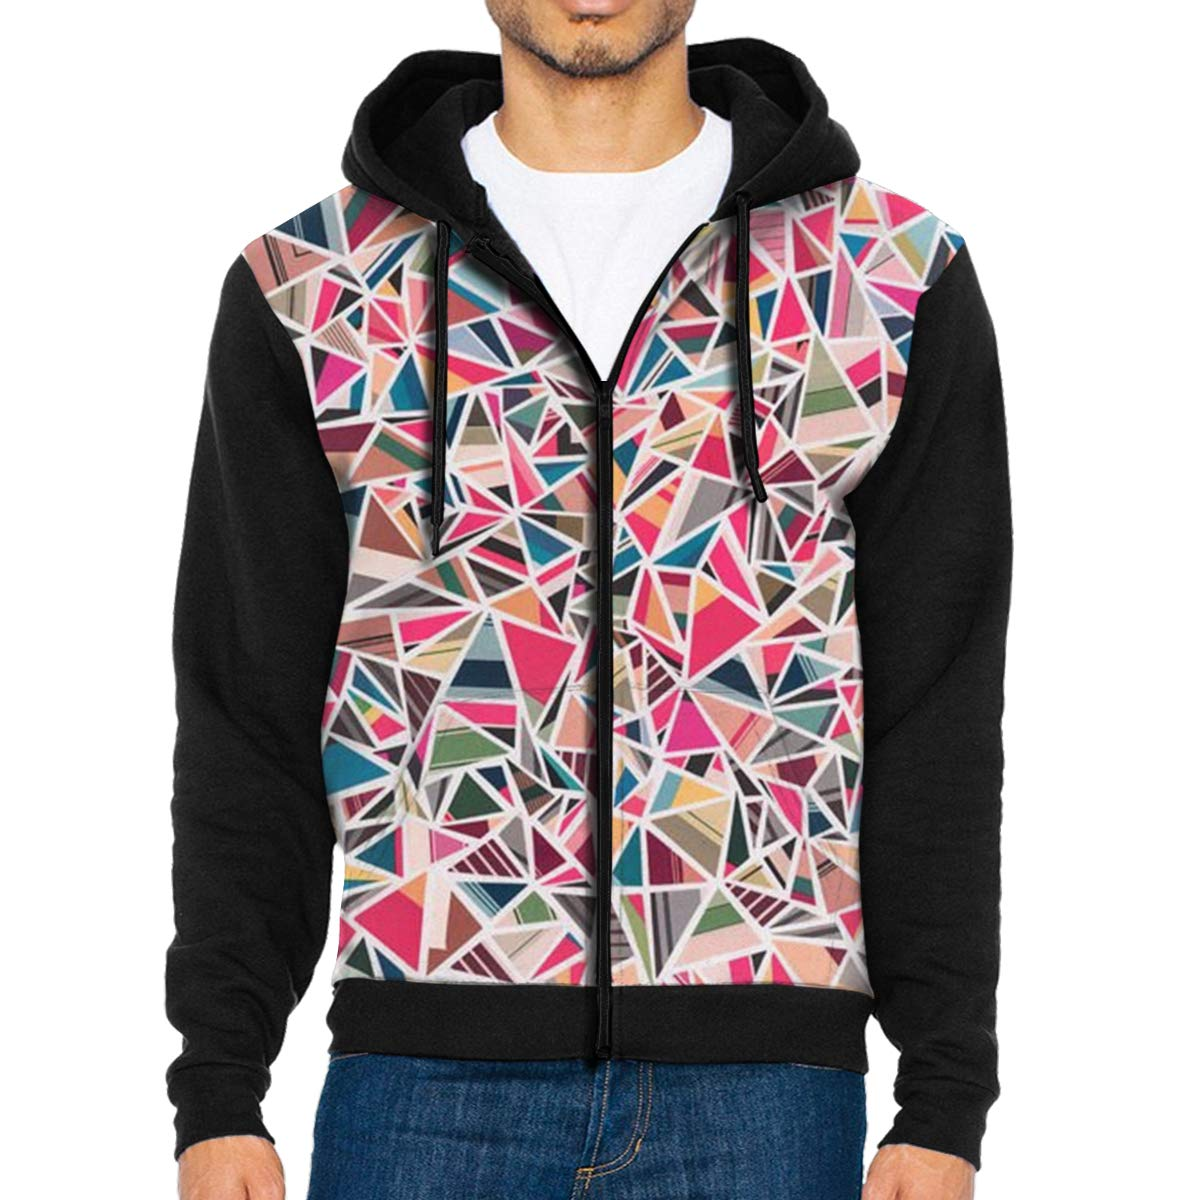 MHBGMYES Colorful Triangles Lightweight Mans Jacket with Hood Long Sleeved Zippered Outwear